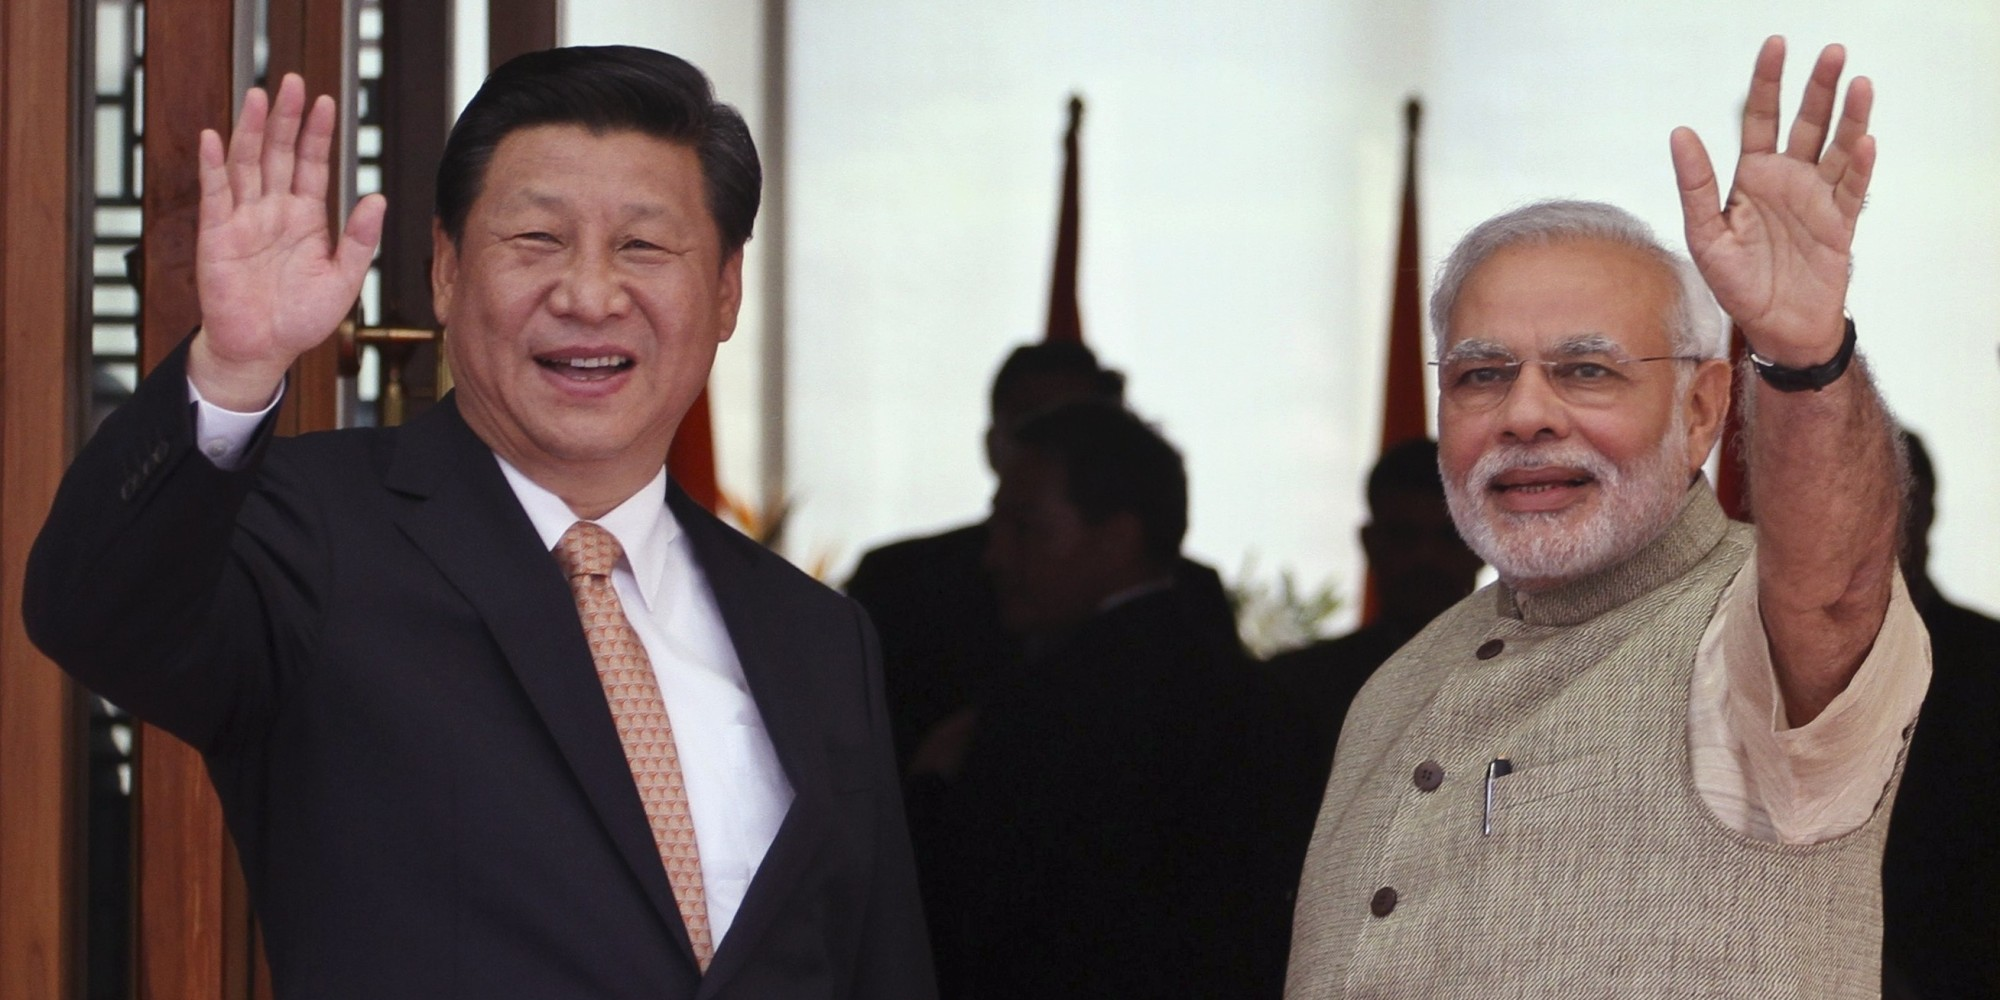 Indian Prime Minister Narendra Modi, right, and Chinese President Xi Jinping wave to the media as Modi welcomes Xi upon his arrival at a hotel in Ahmadabad, India, Wednesday, Sept. 17, 2014.  Xi landed in Modi's home state of Gujarat on Wednesday for a three-day visit expected to focus on India's need to improve worn out infrastructure and reduce its trade deficit. (AP Photo/Ajit Solanki)